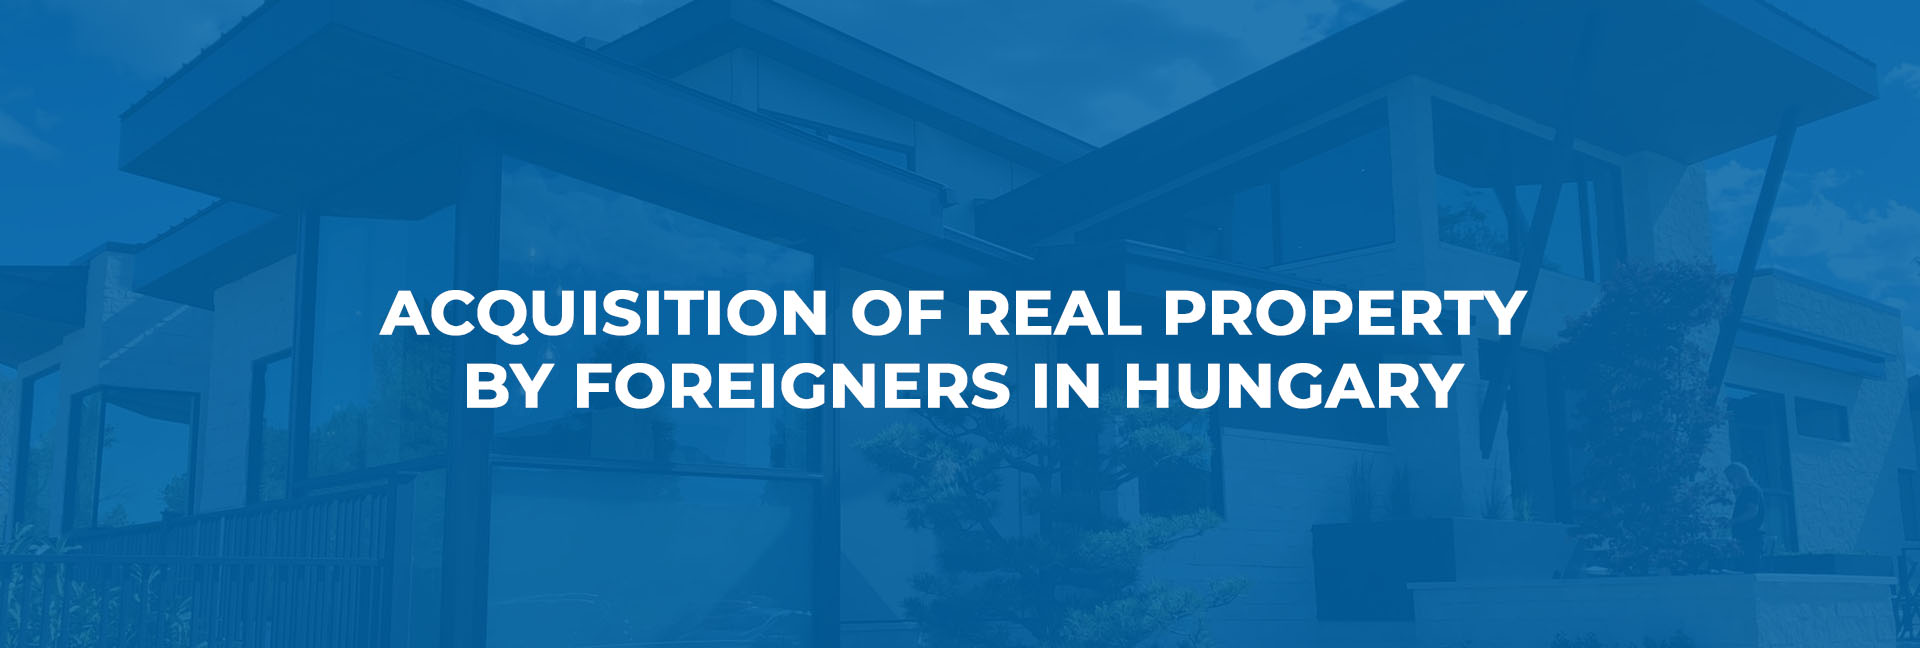 ACQUISITION OF REAL PROPERTY BY FOREIGNERS IN HUNGARY